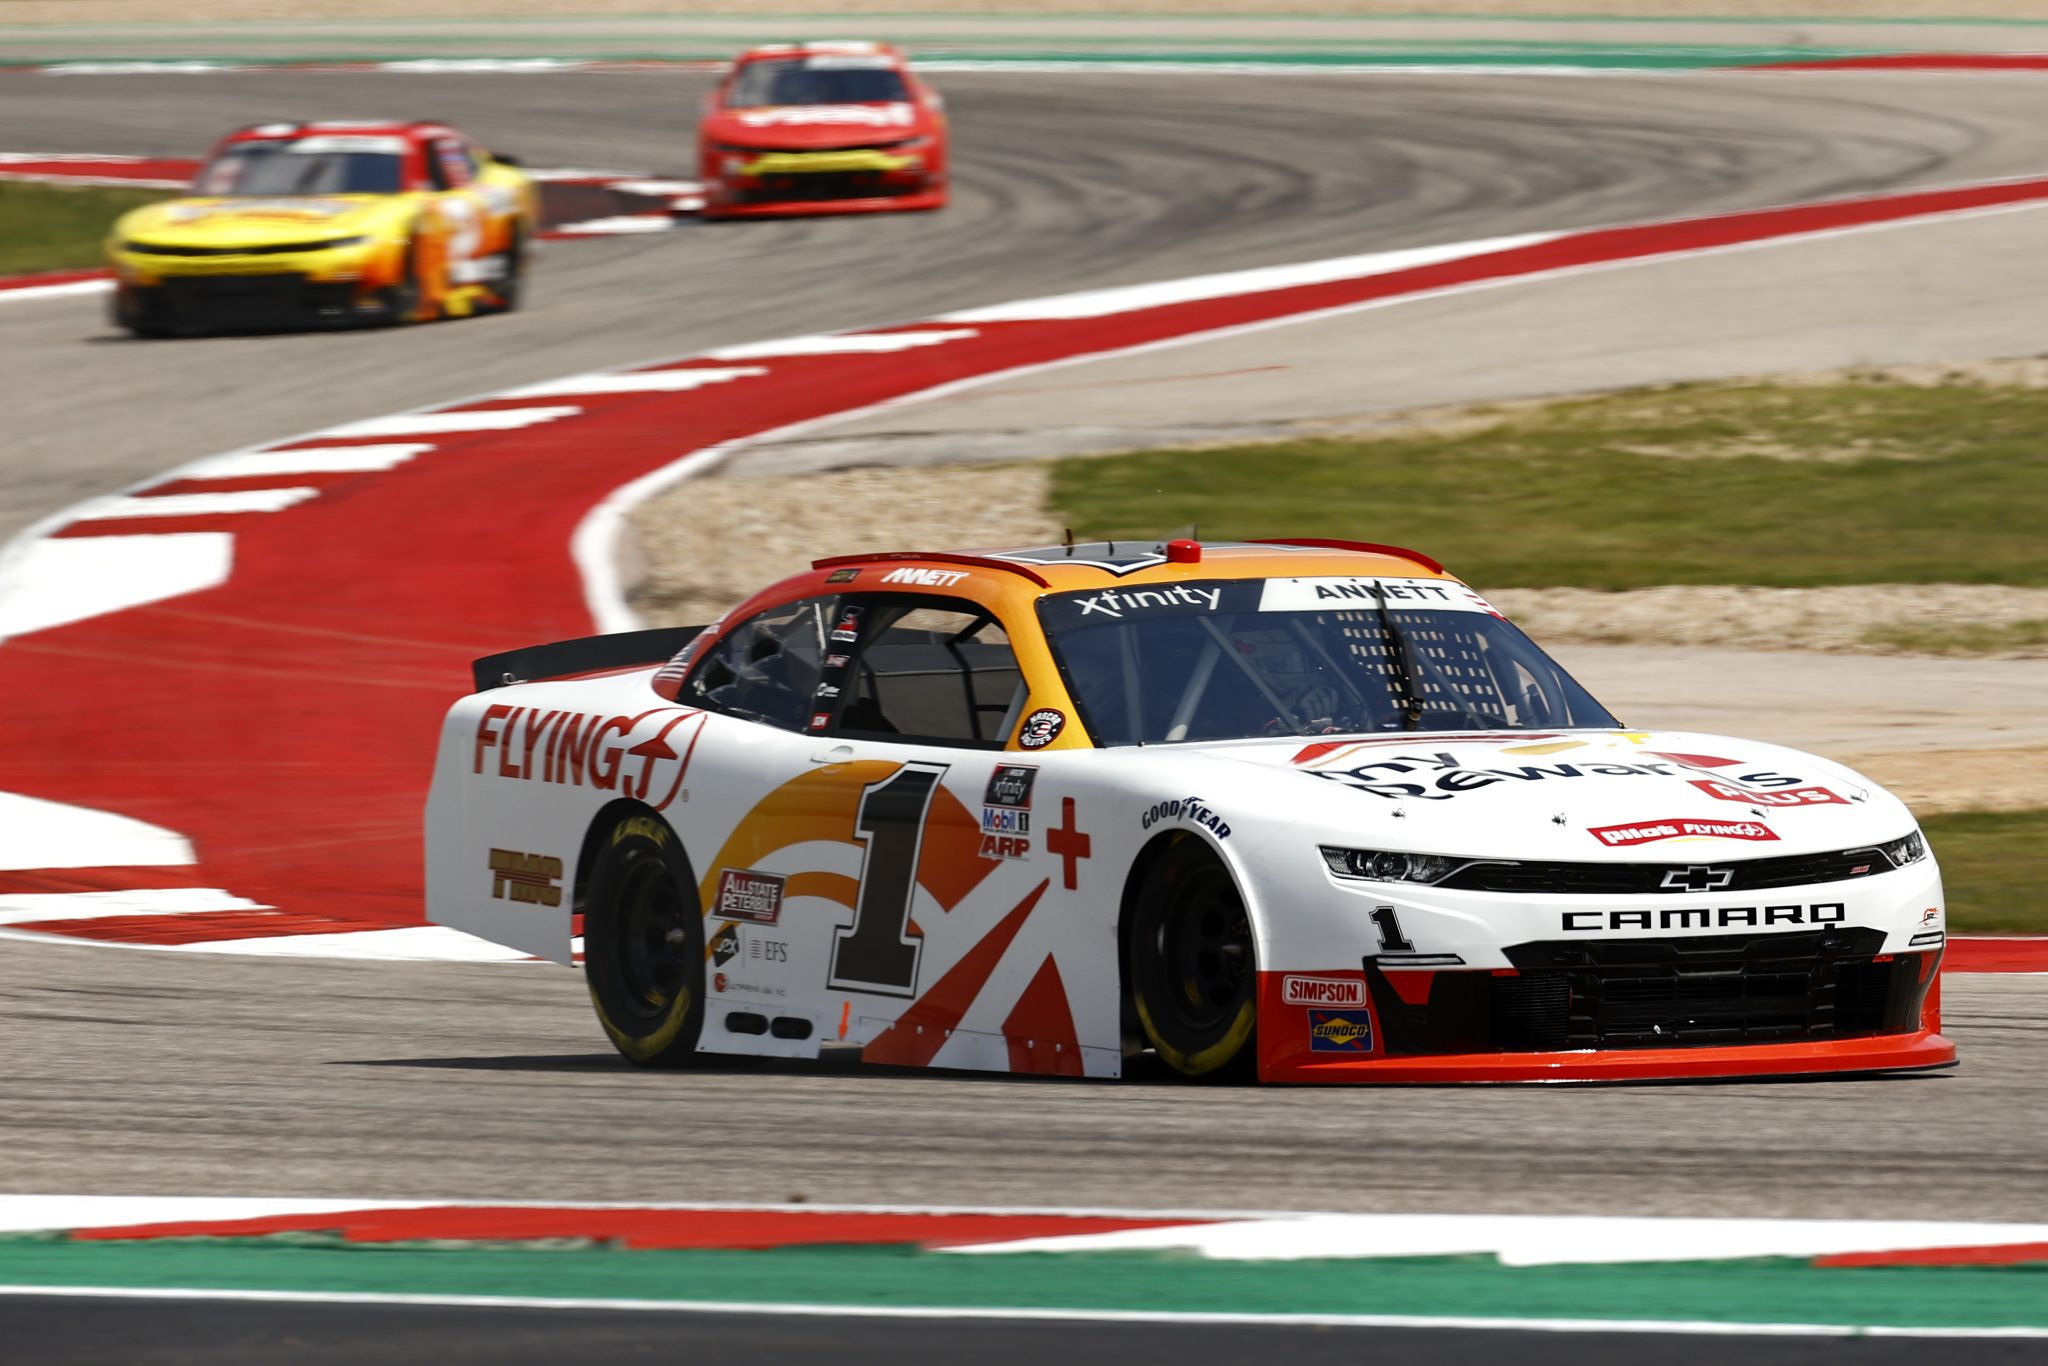 AUSTIN, TEXAS - MAY 21: Michael Annett, driver of the #1 Pilot Flying J myRewards Plus Chevrolet, drives during practice for the NASCAR Xfinity Series Pit Boss 250 at Circuit of The Americas on May 21, 2021 in Austin, Texas. (Photo by Jared C. Tilton/Getty Images) | Getty Images